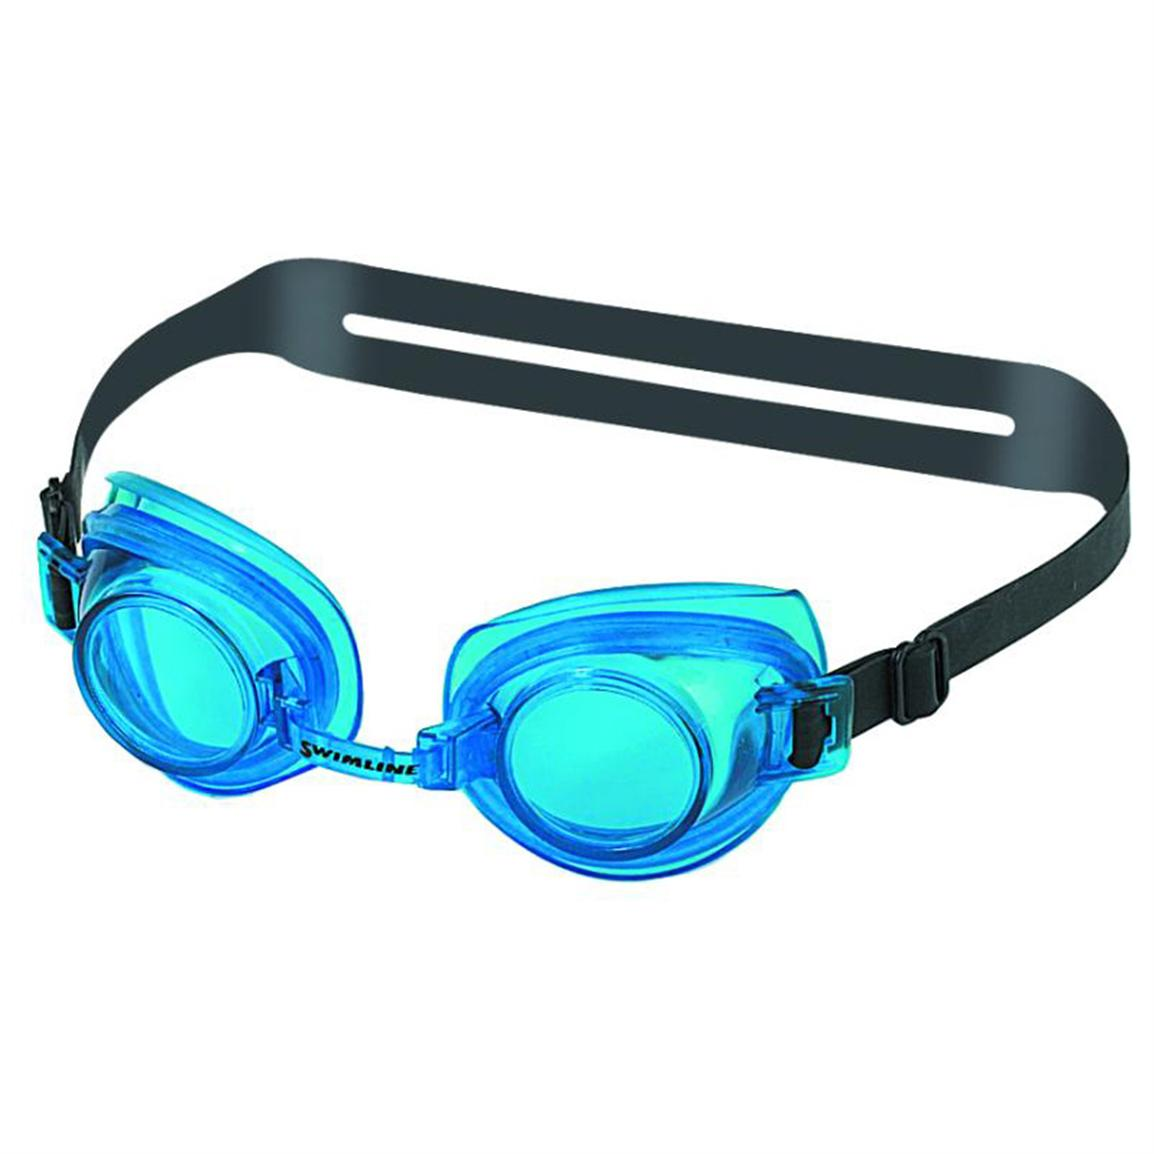 Free swim goggles cliparts. Swimsuit clipart swimming gear